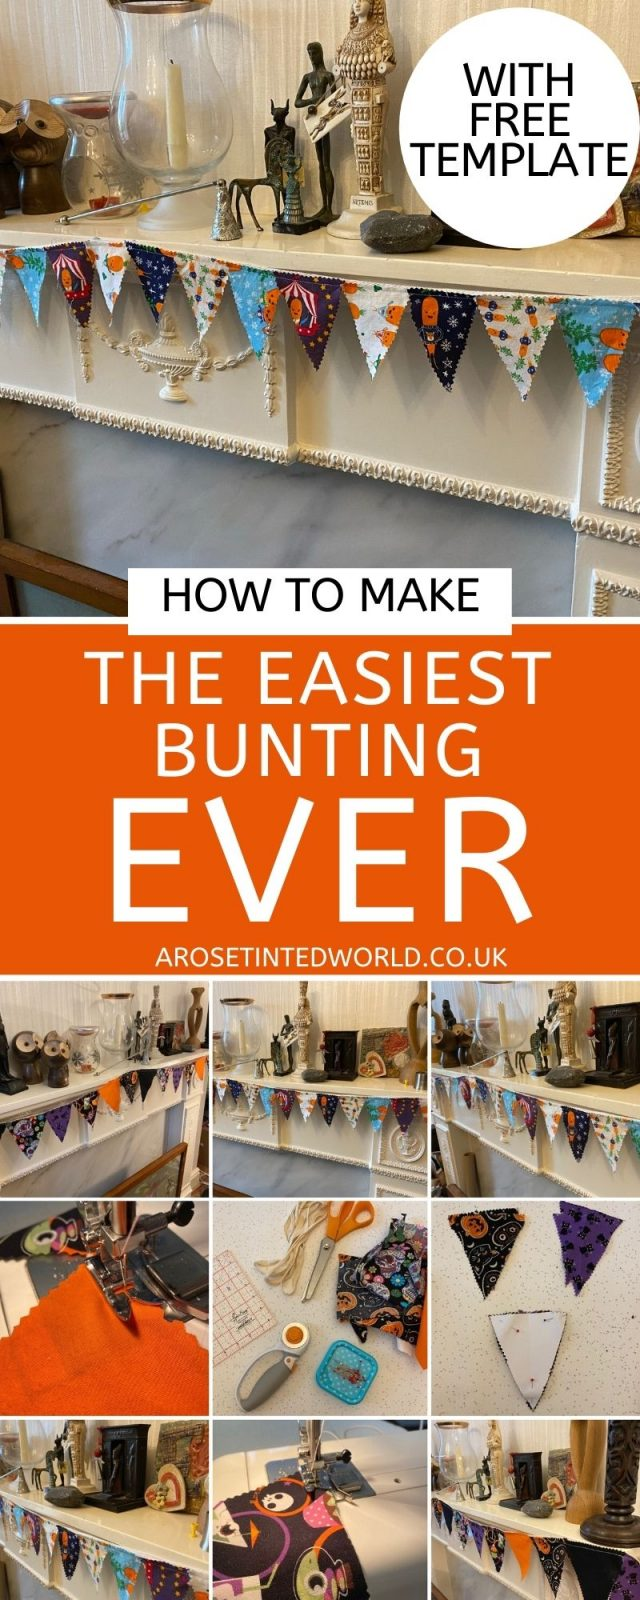 How To Make The Easiest Bunting Ever - this bunting is quick, easy, simple to make and uses up your fabric scraps. Get the free template here